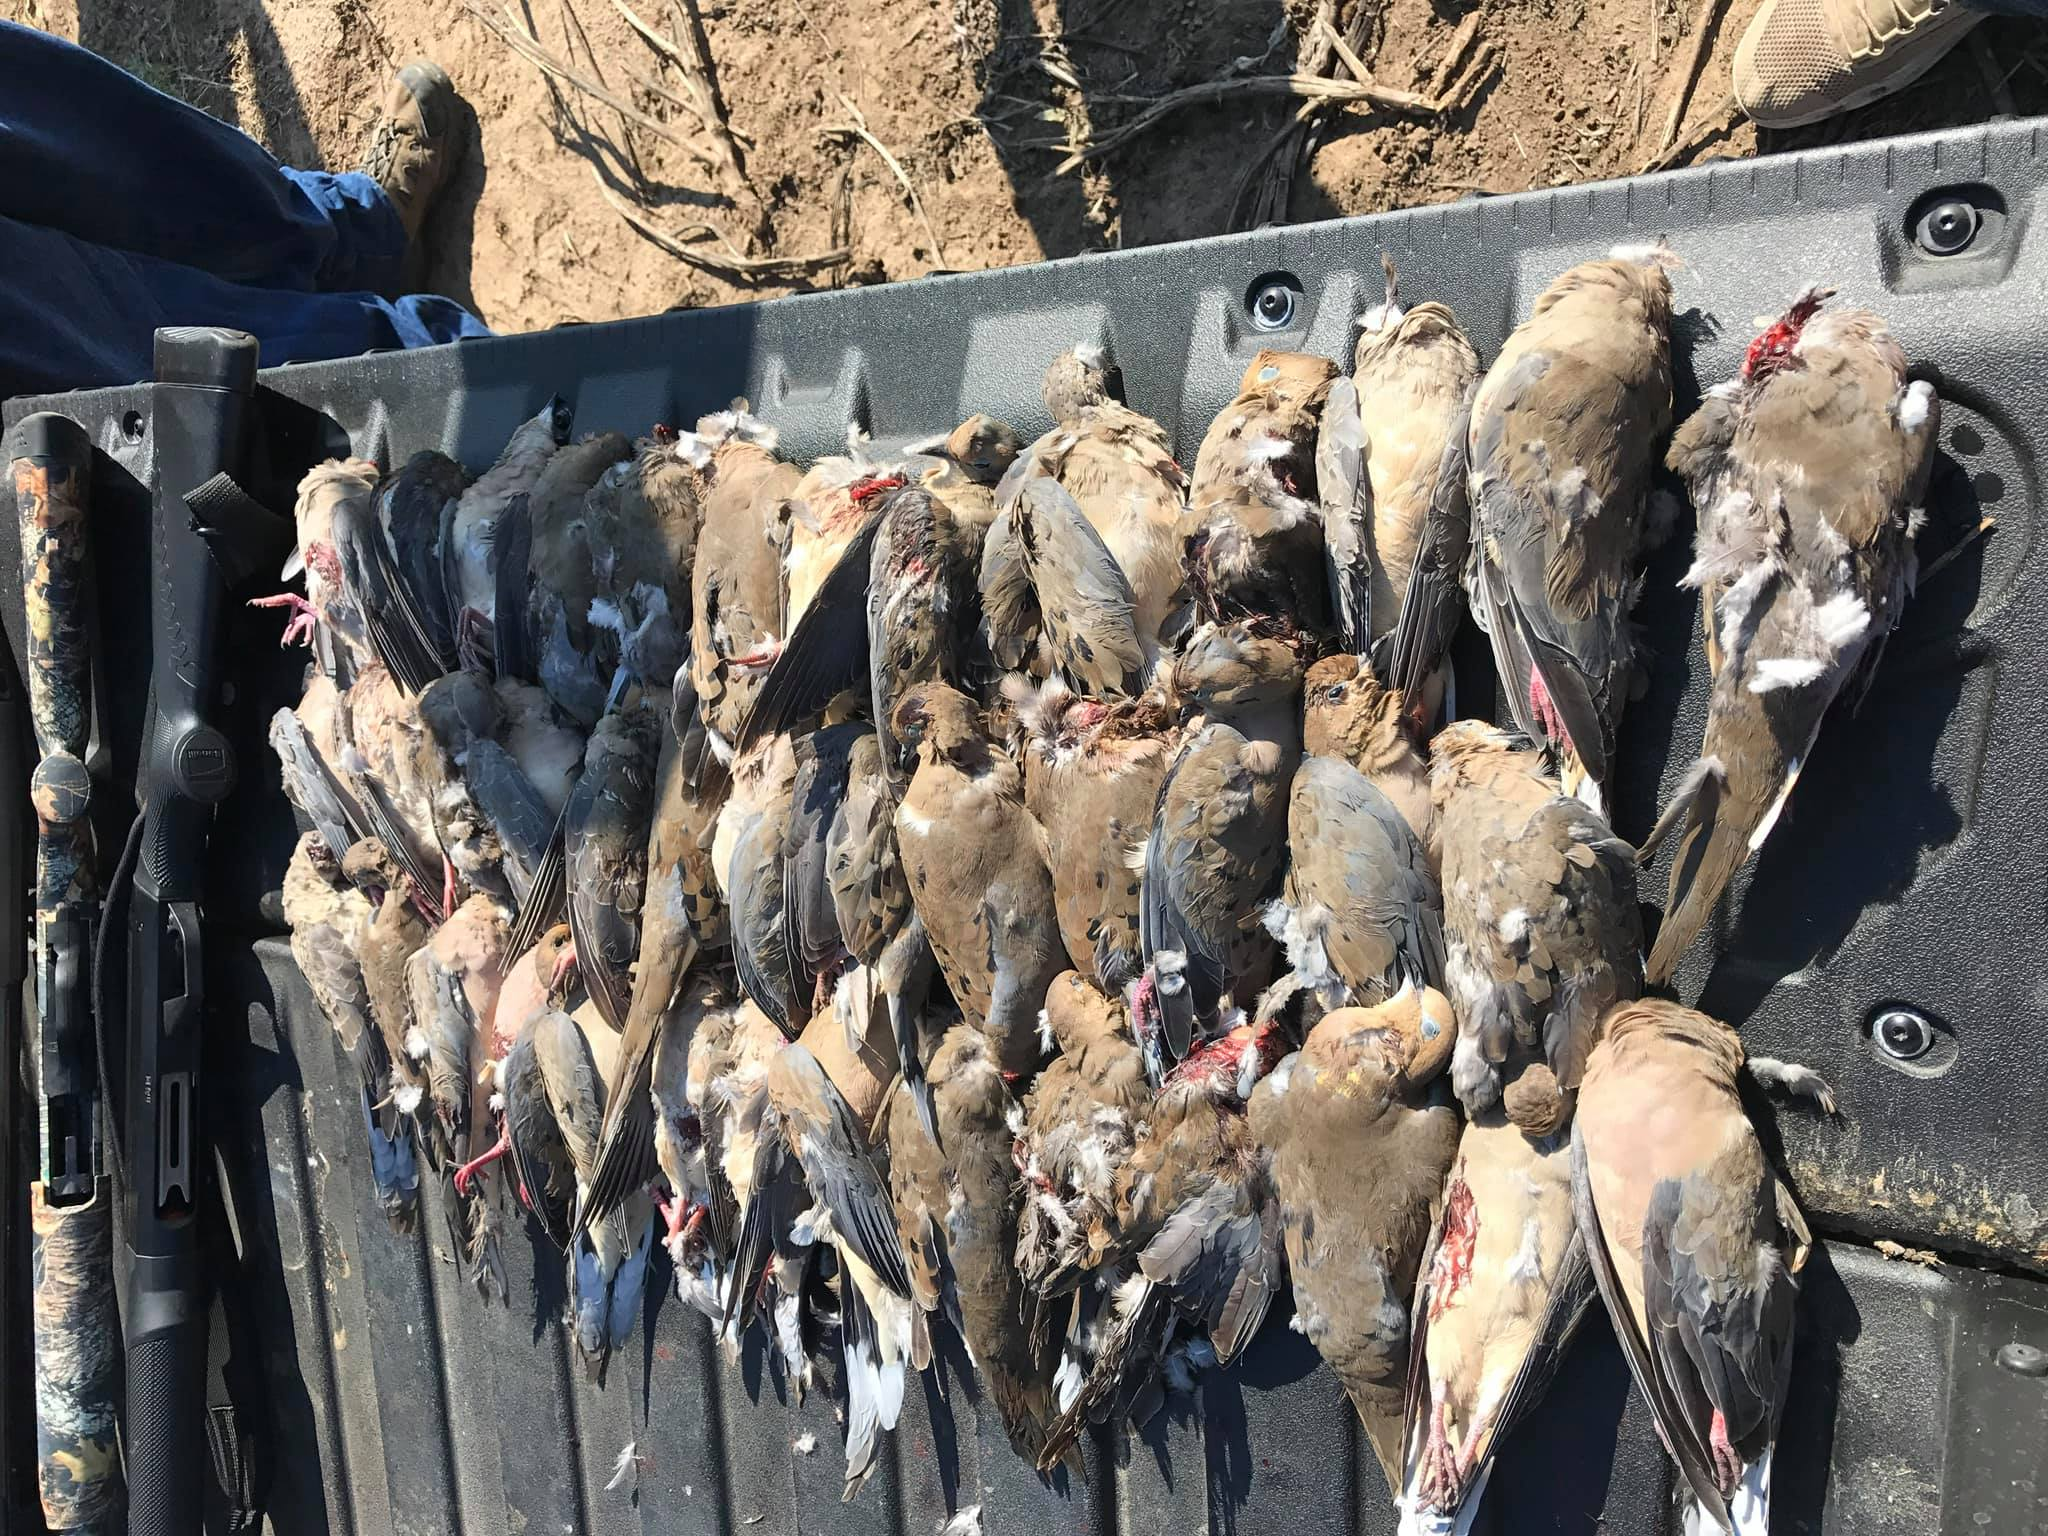 dove-hunt-in-cleburne-tx-15648900641777002899